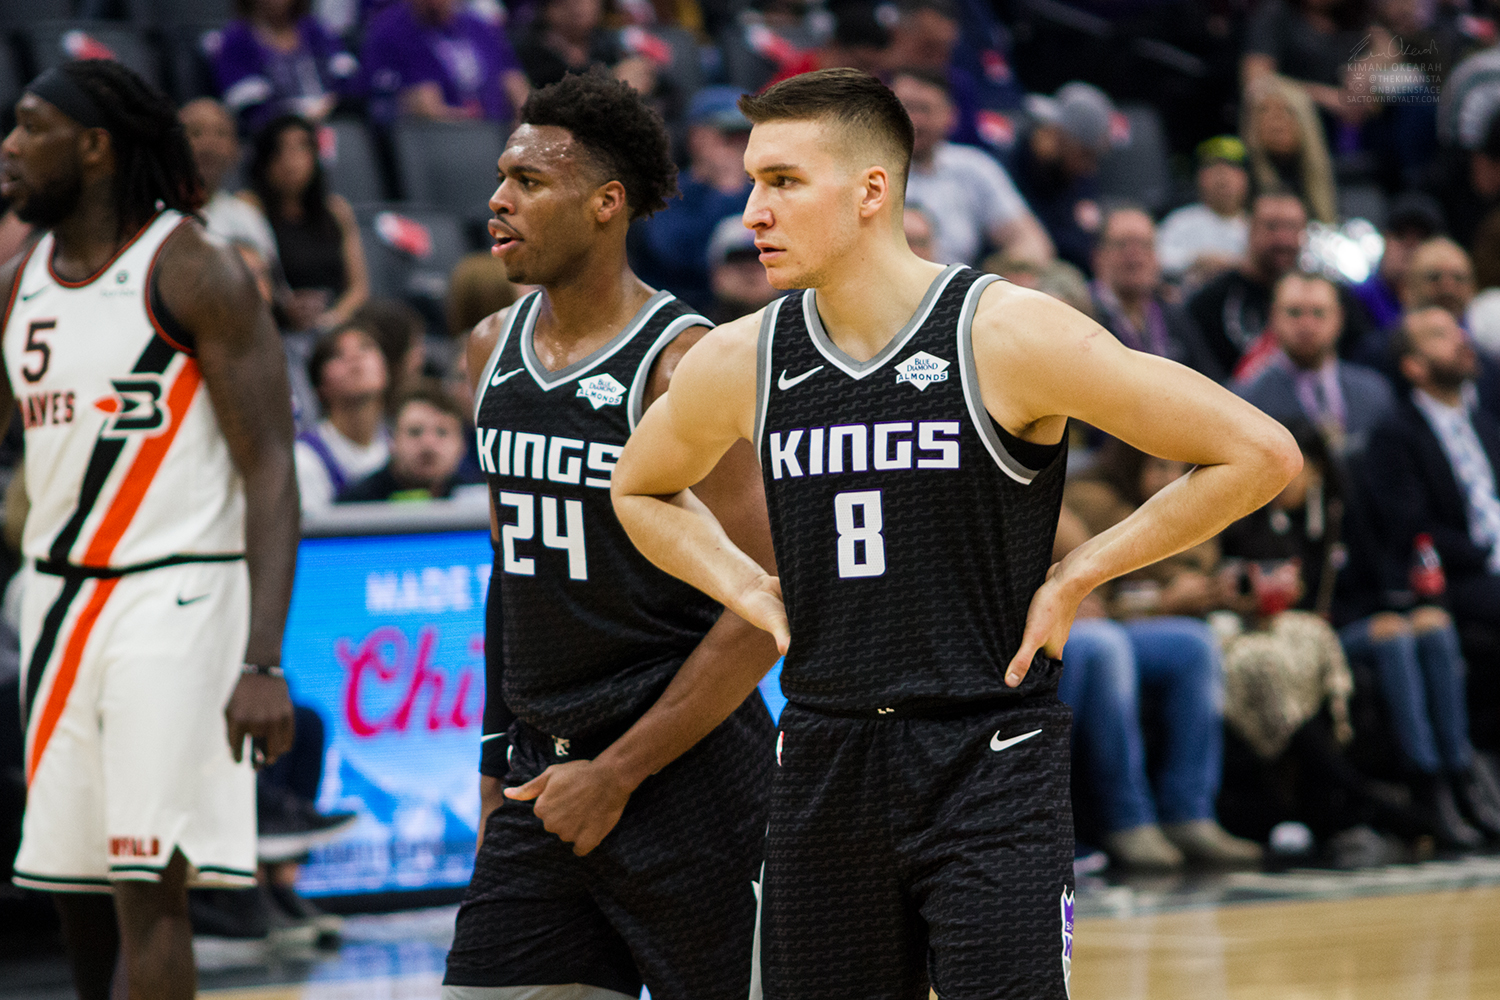 The Kings have until 11:59 PM ET tonight to match the Hawks offer to Bogdan Bogdanovic